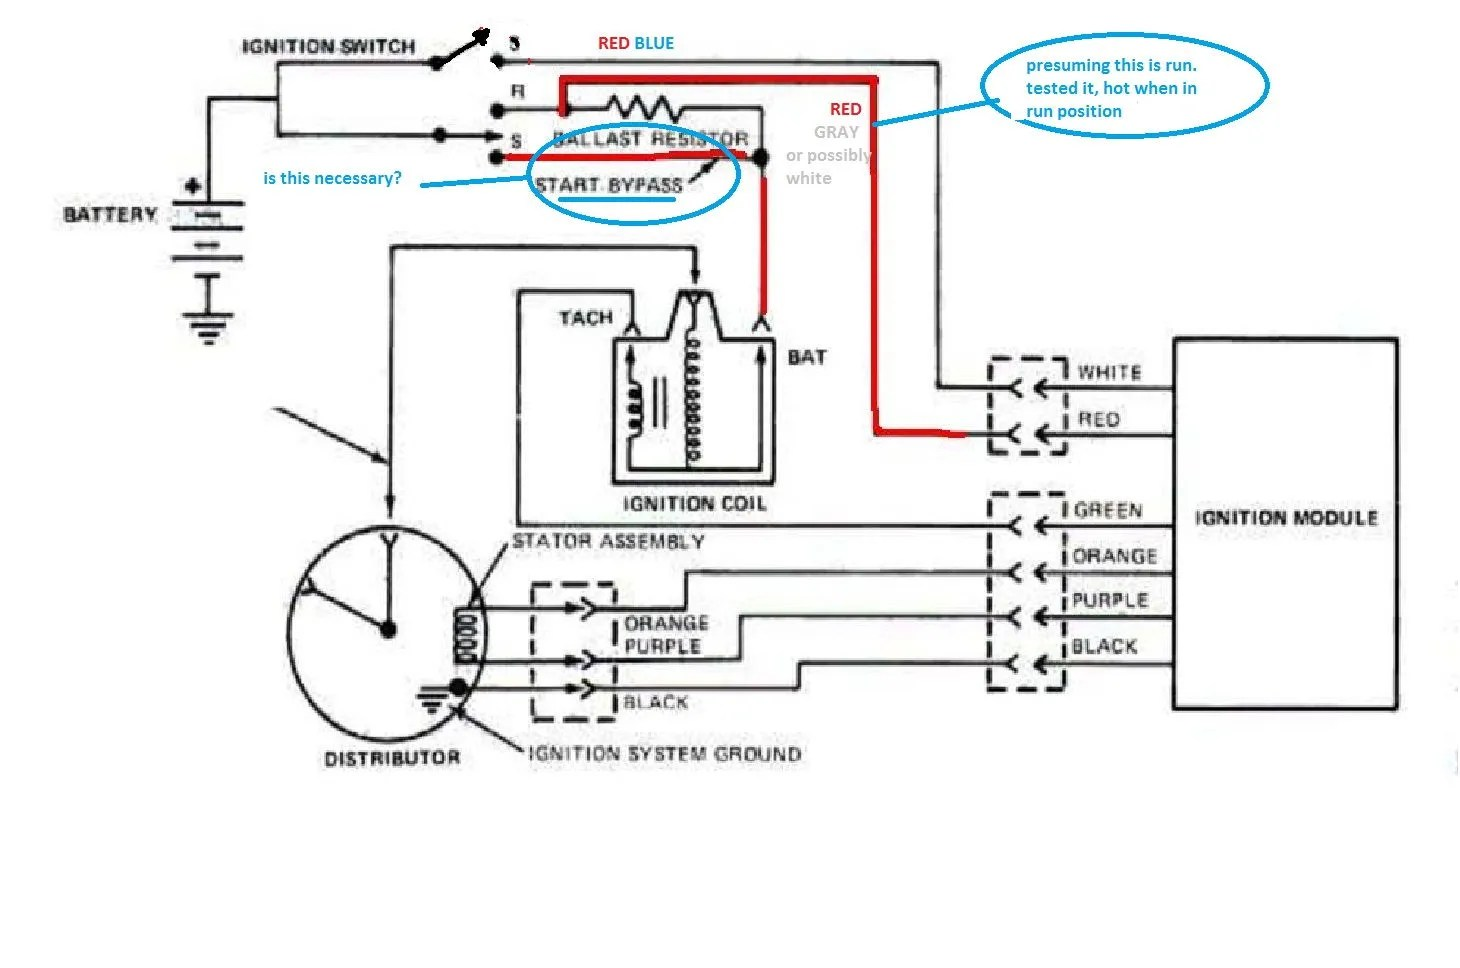 hight resolution of hunter thermostat 44260 wiring diagram 2wire trusted wiring diagrams hunter thermostat 44155c wiring diagram hunter thermostat 44260 wiring